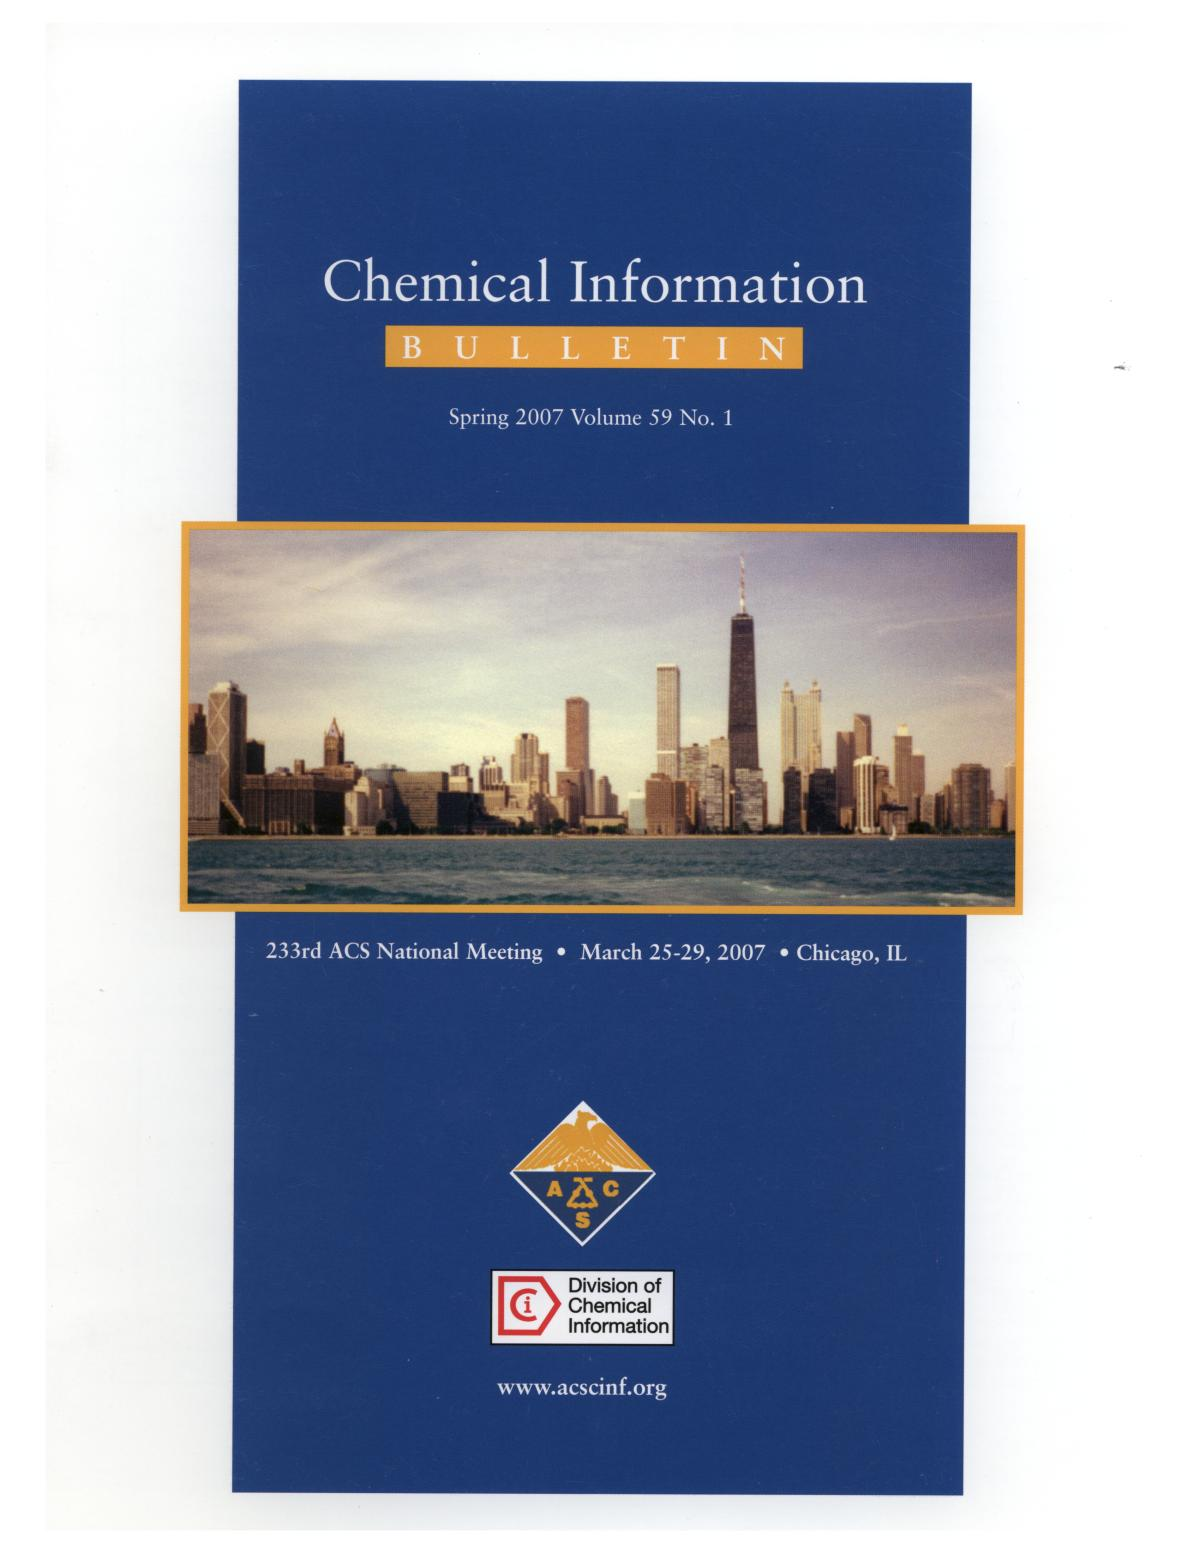 Chemical Information Bulletin, Volume 59, Number 1, Spring 2007                                                                                                      Front Cover